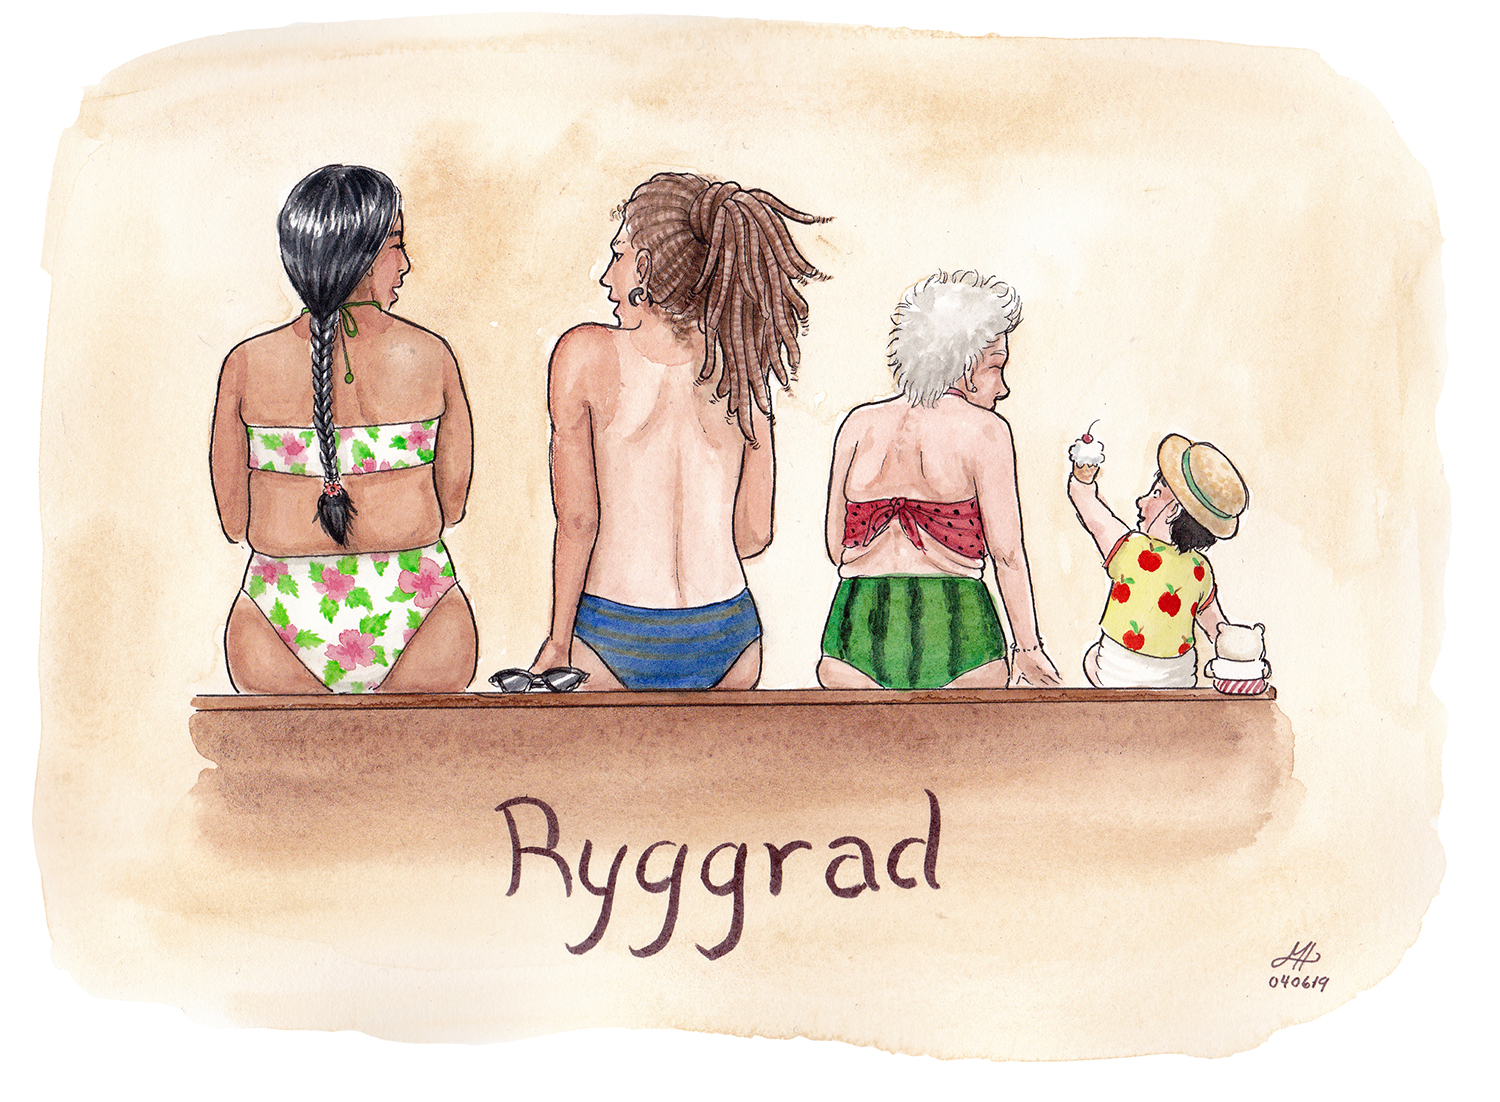 ryggrad illustration ordvits